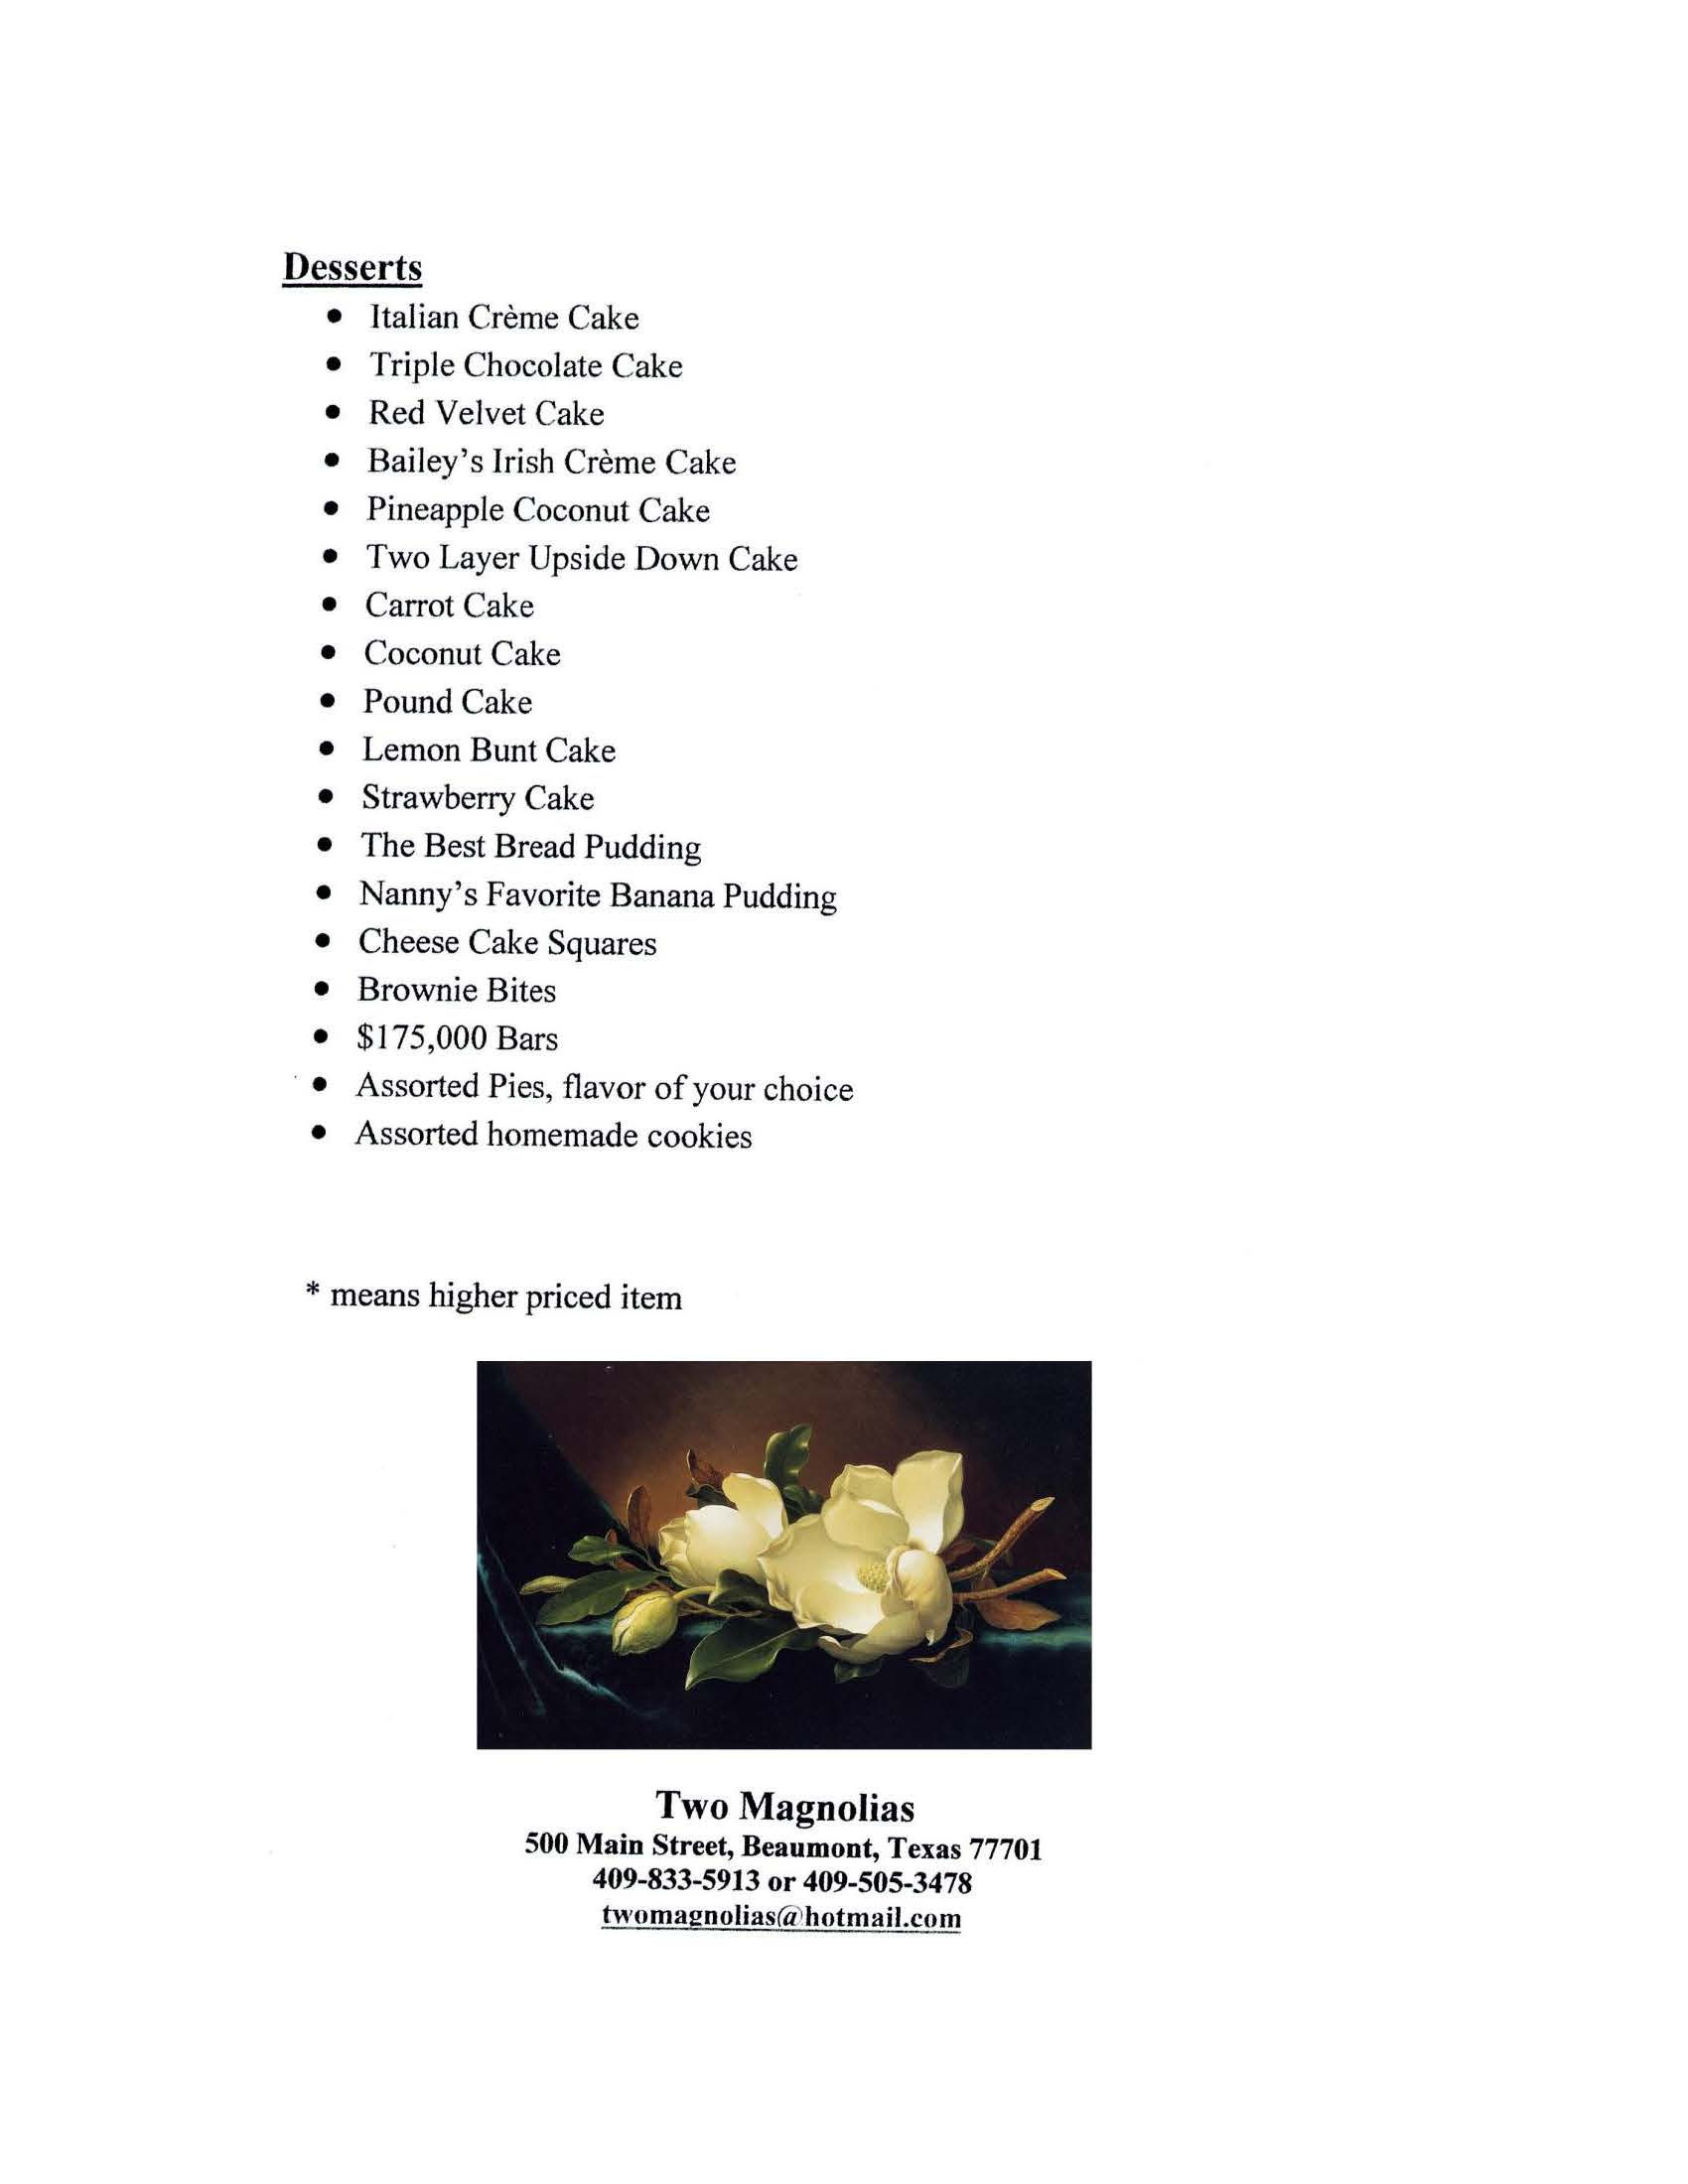 wedding catering Beaumont TX, wedding catering Southeast Texas, SETX wedding catering, wedding catering Golden Triangle TX